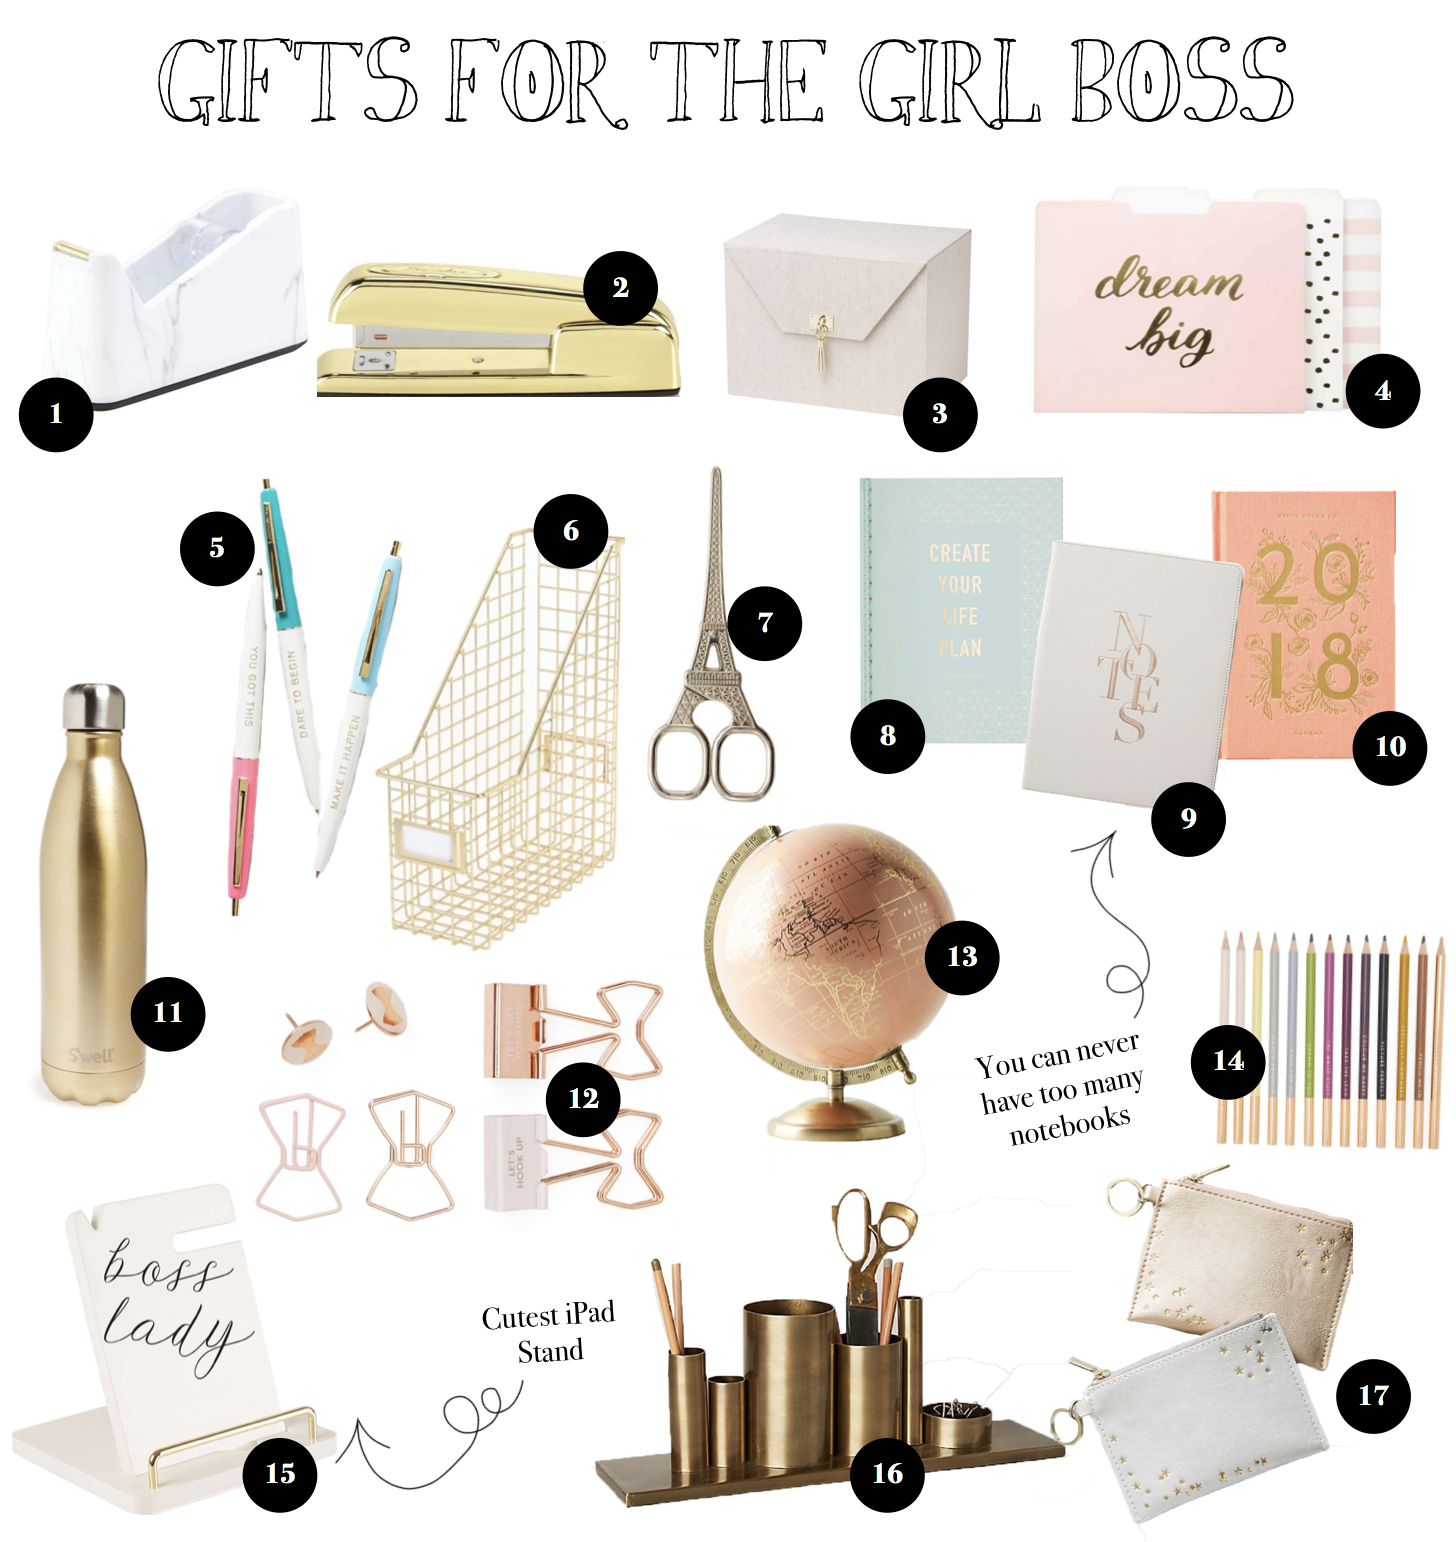 12 Gift Guides of 2017 Gift ideas for girl bosses, office supplies and more! on fashion blog daily dose of charm by lauren lindmark